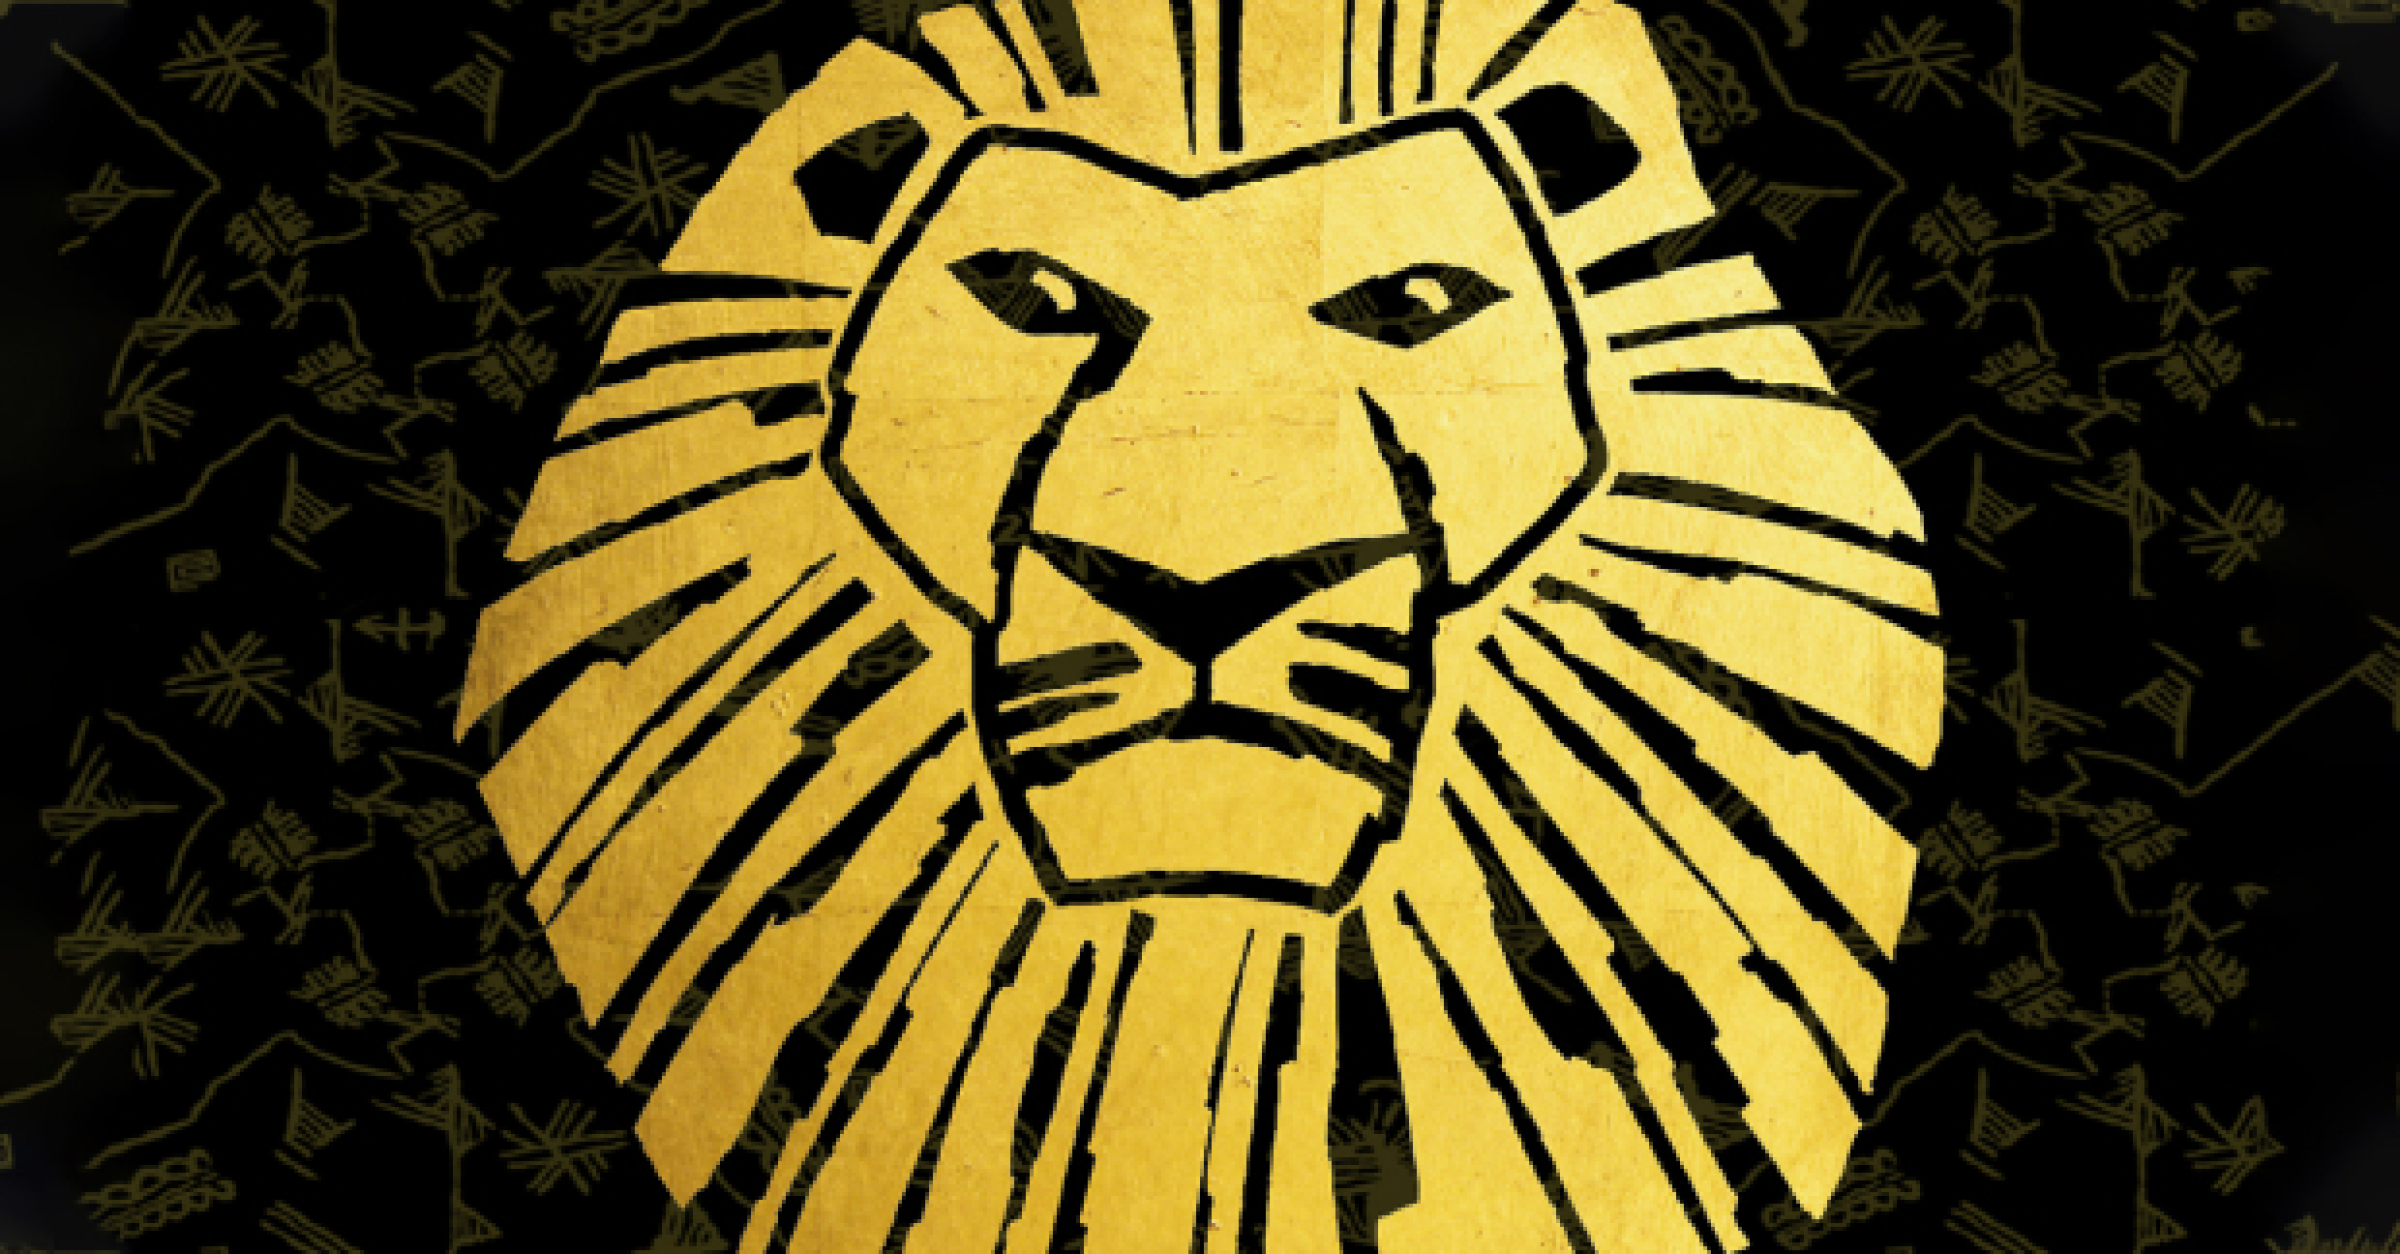 The Lion King Announces Gala To Celebrate 20 Years In The